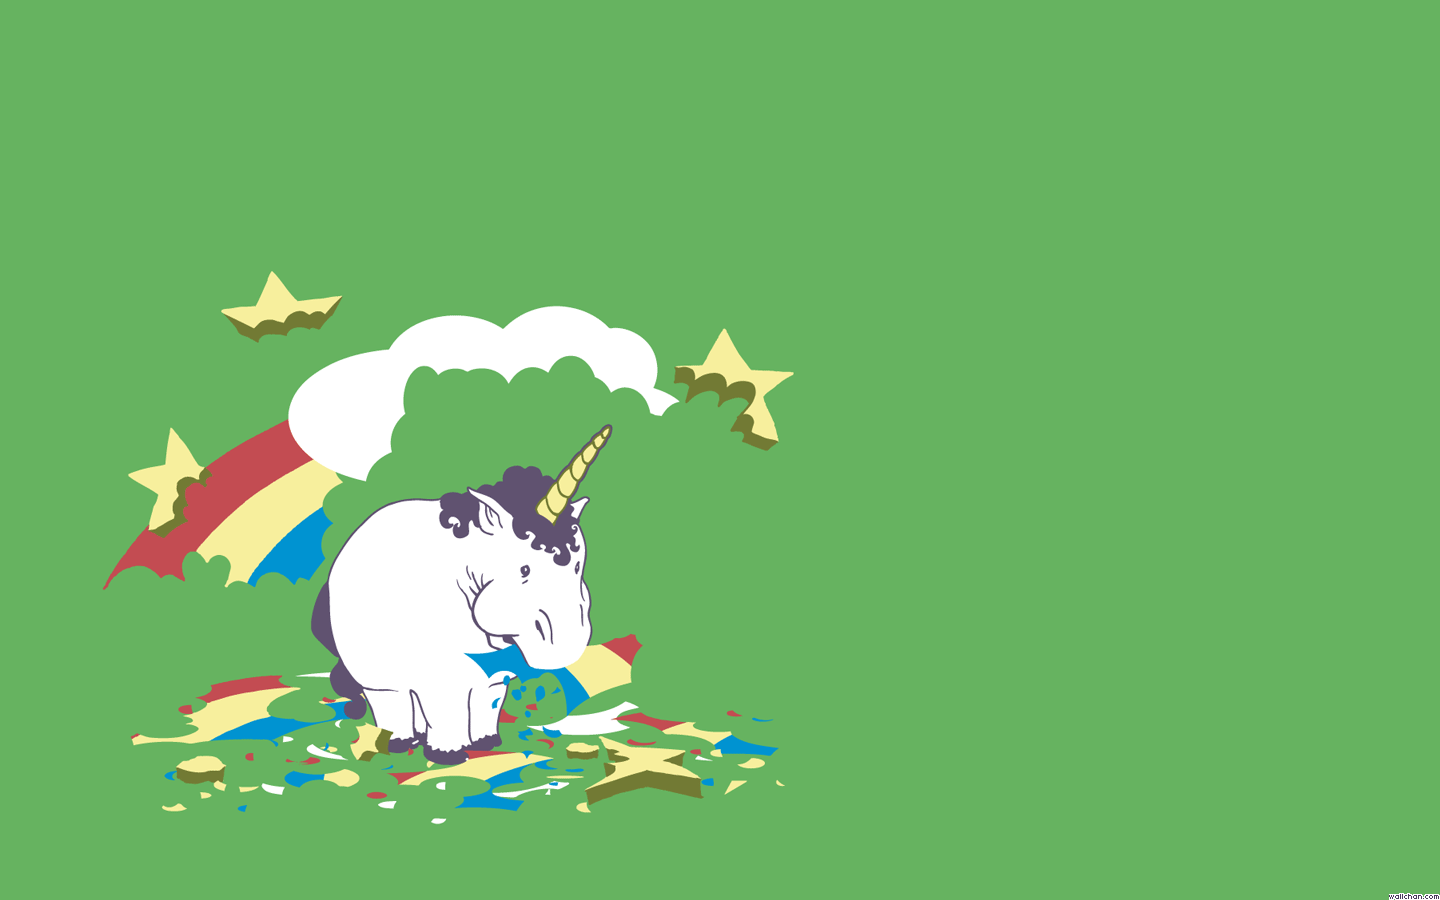 unicorn wallpapers full hd - photo #33